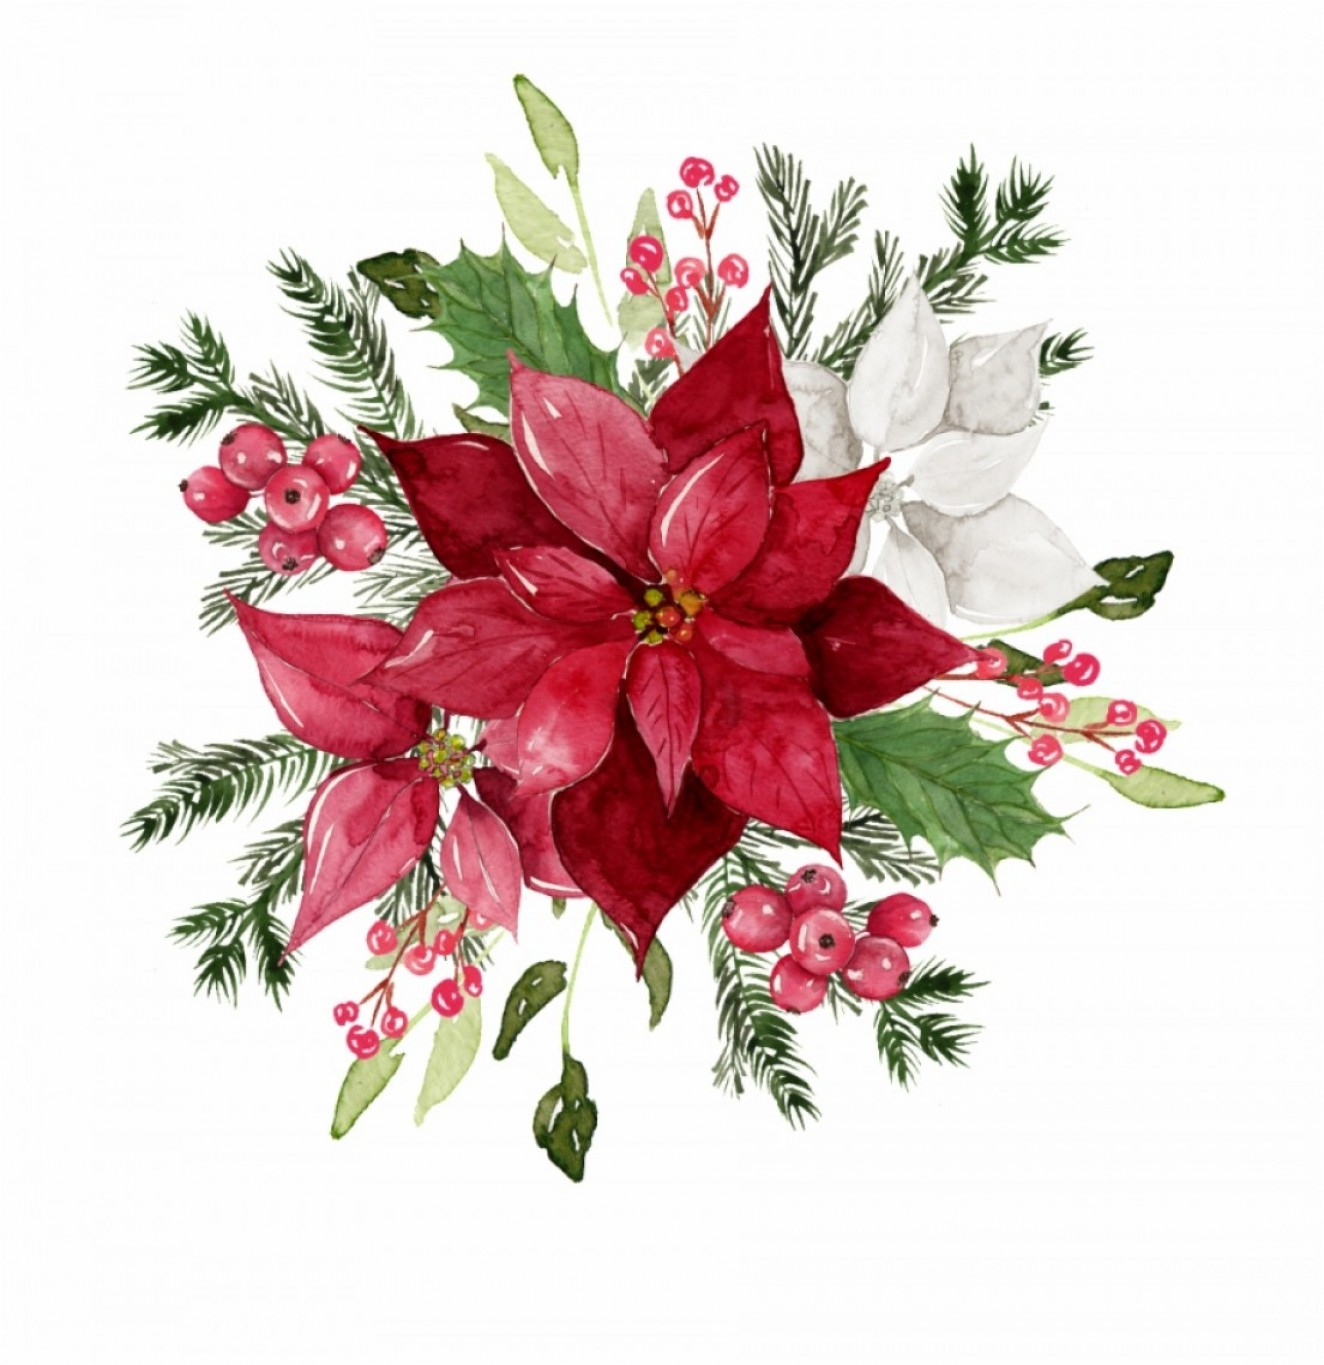 Watercolor Vector Free Designs: Xrhihwred Watercolor Flowers Free Matting Vector Free Download